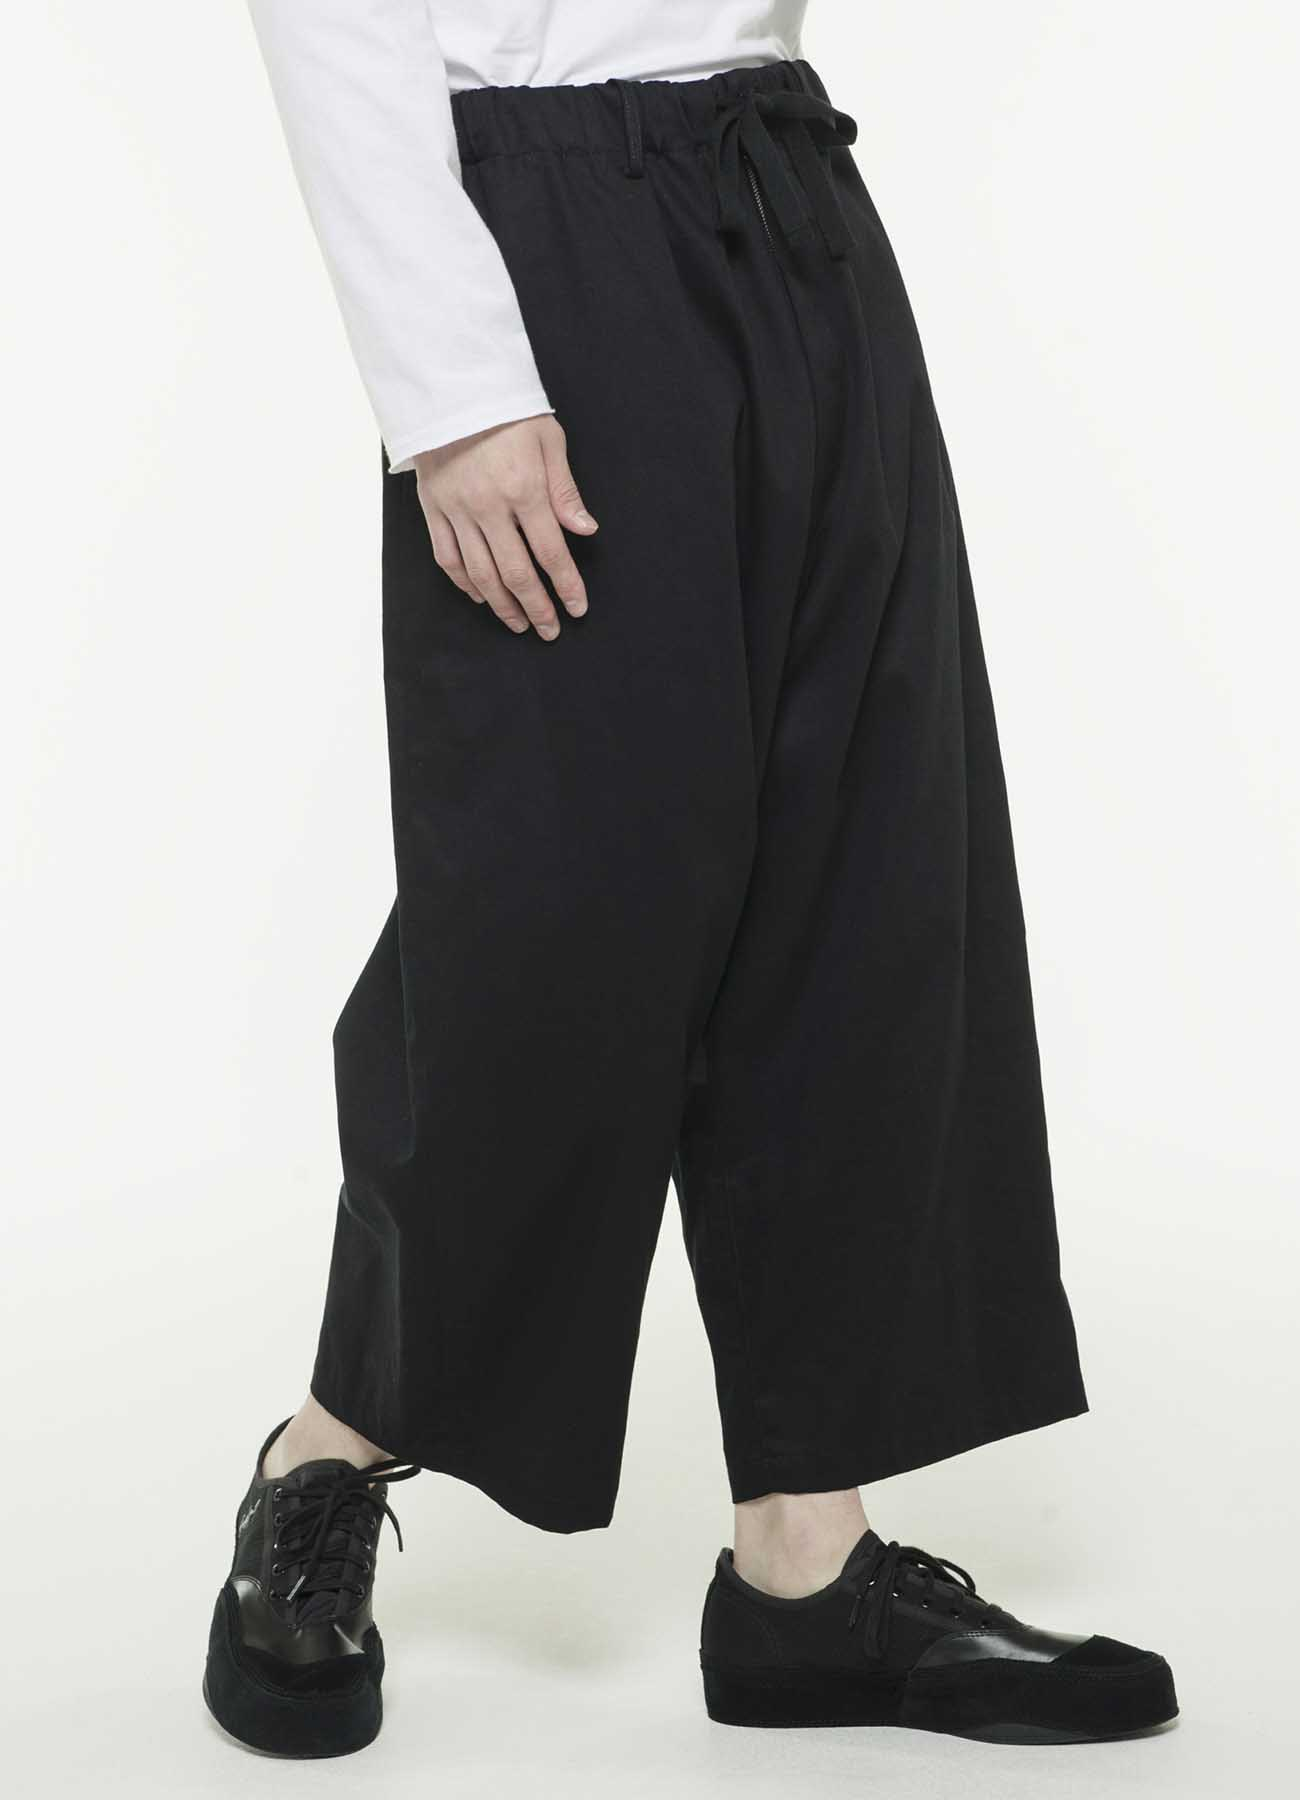 20/Cotton NoTack SideTape Cropped Wide Pants